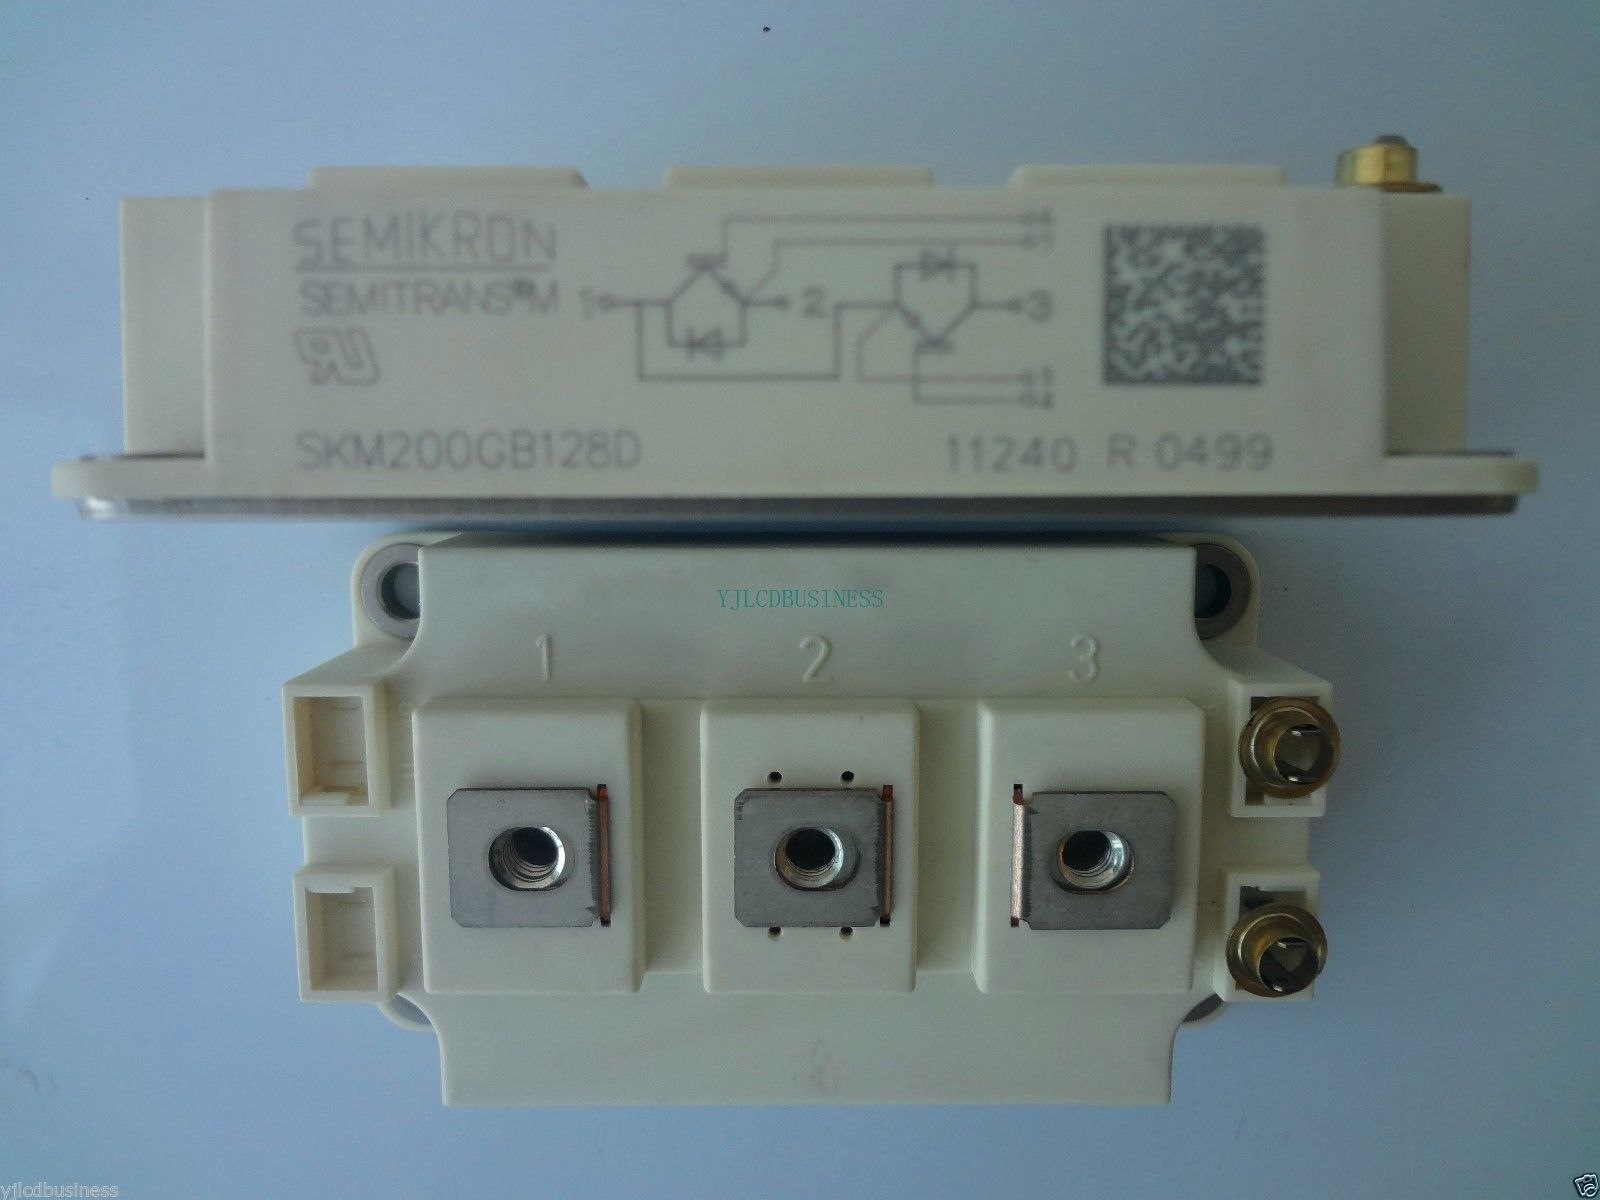 Primary image for new SKM200GB128D semikron module 90 days warranty